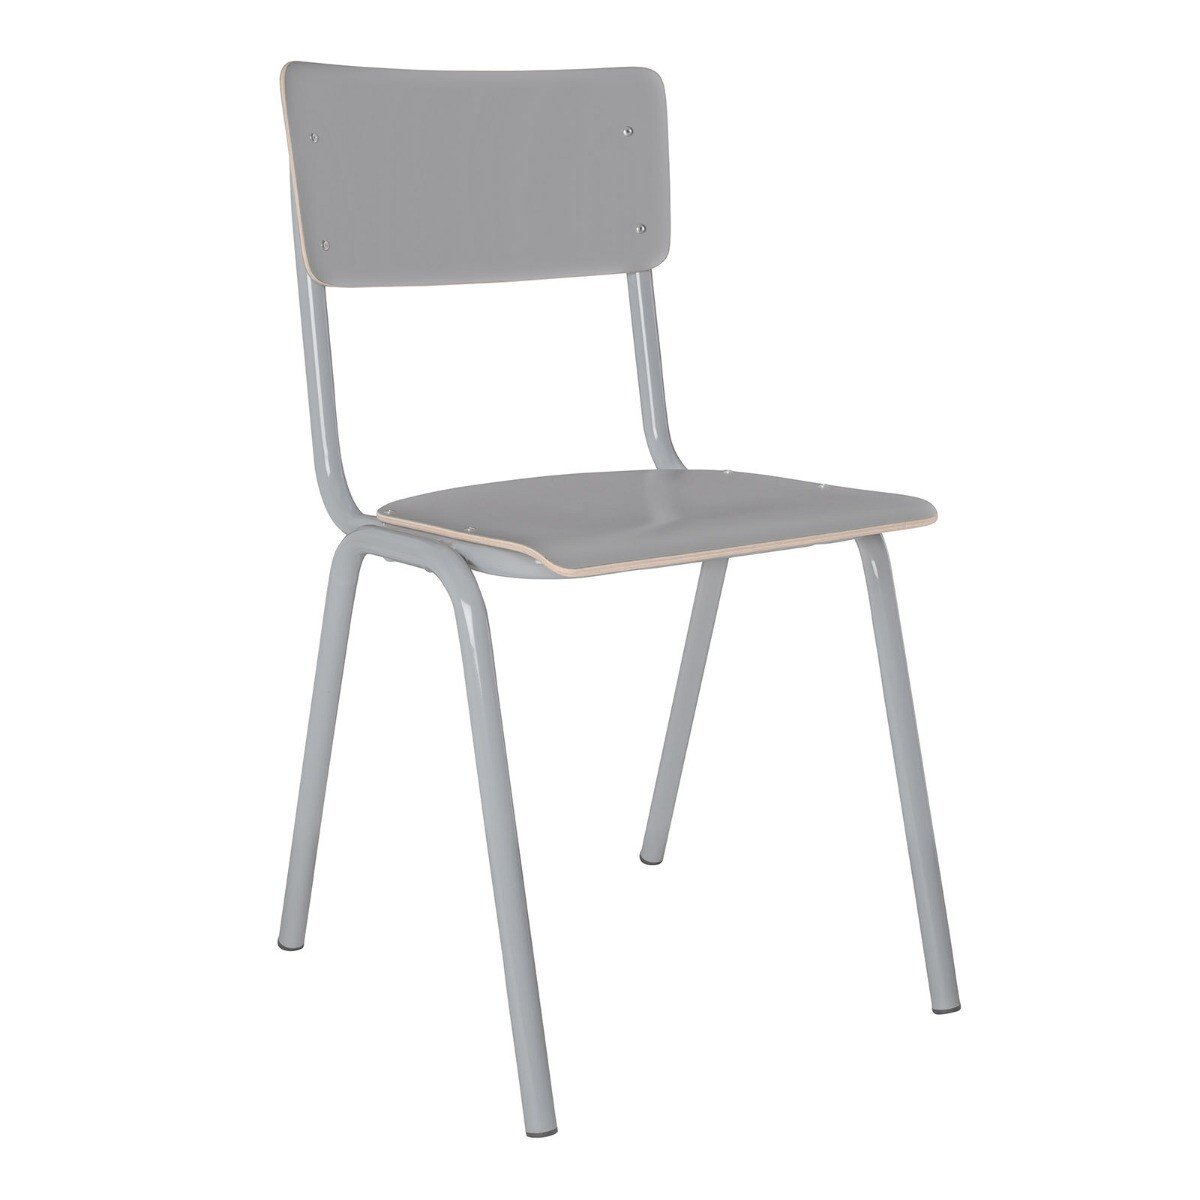 CHAIR BACK TO SCHOOL HPL GREY